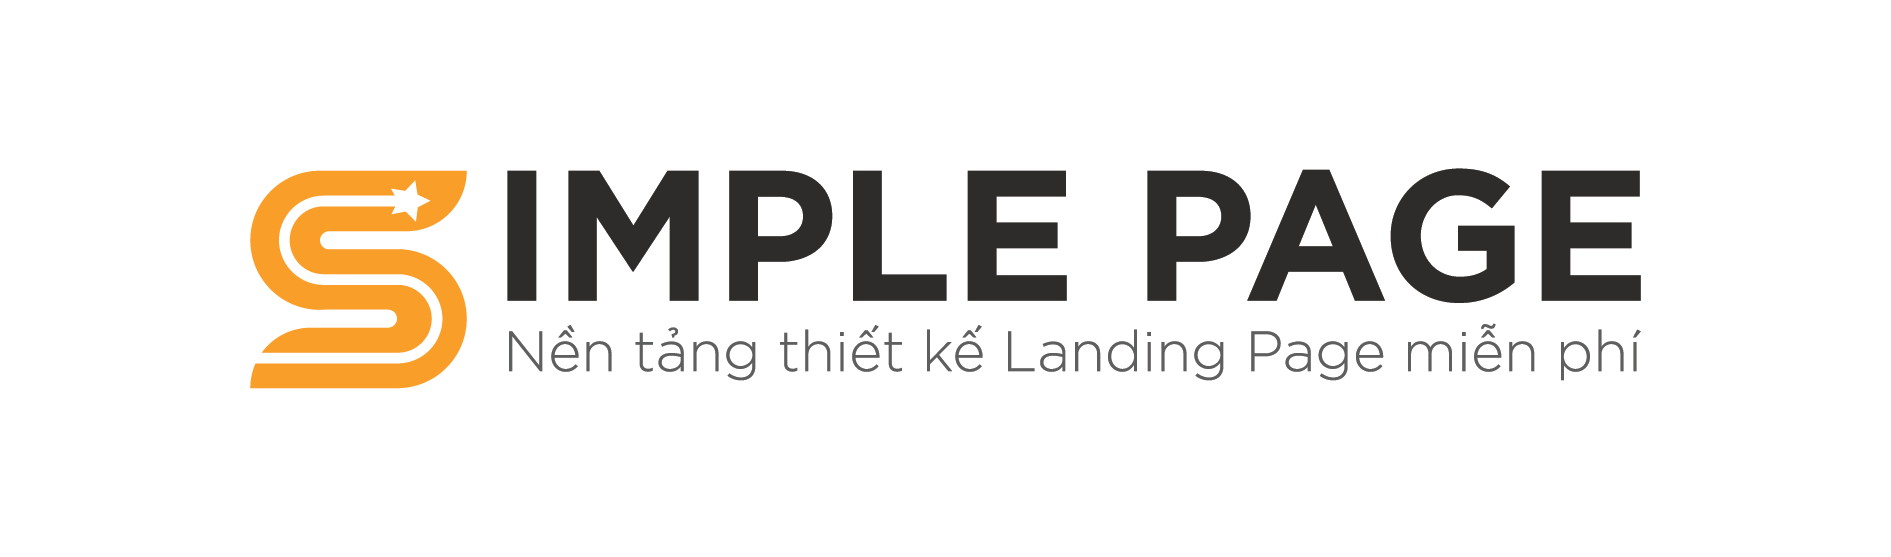 logo simple page new-06